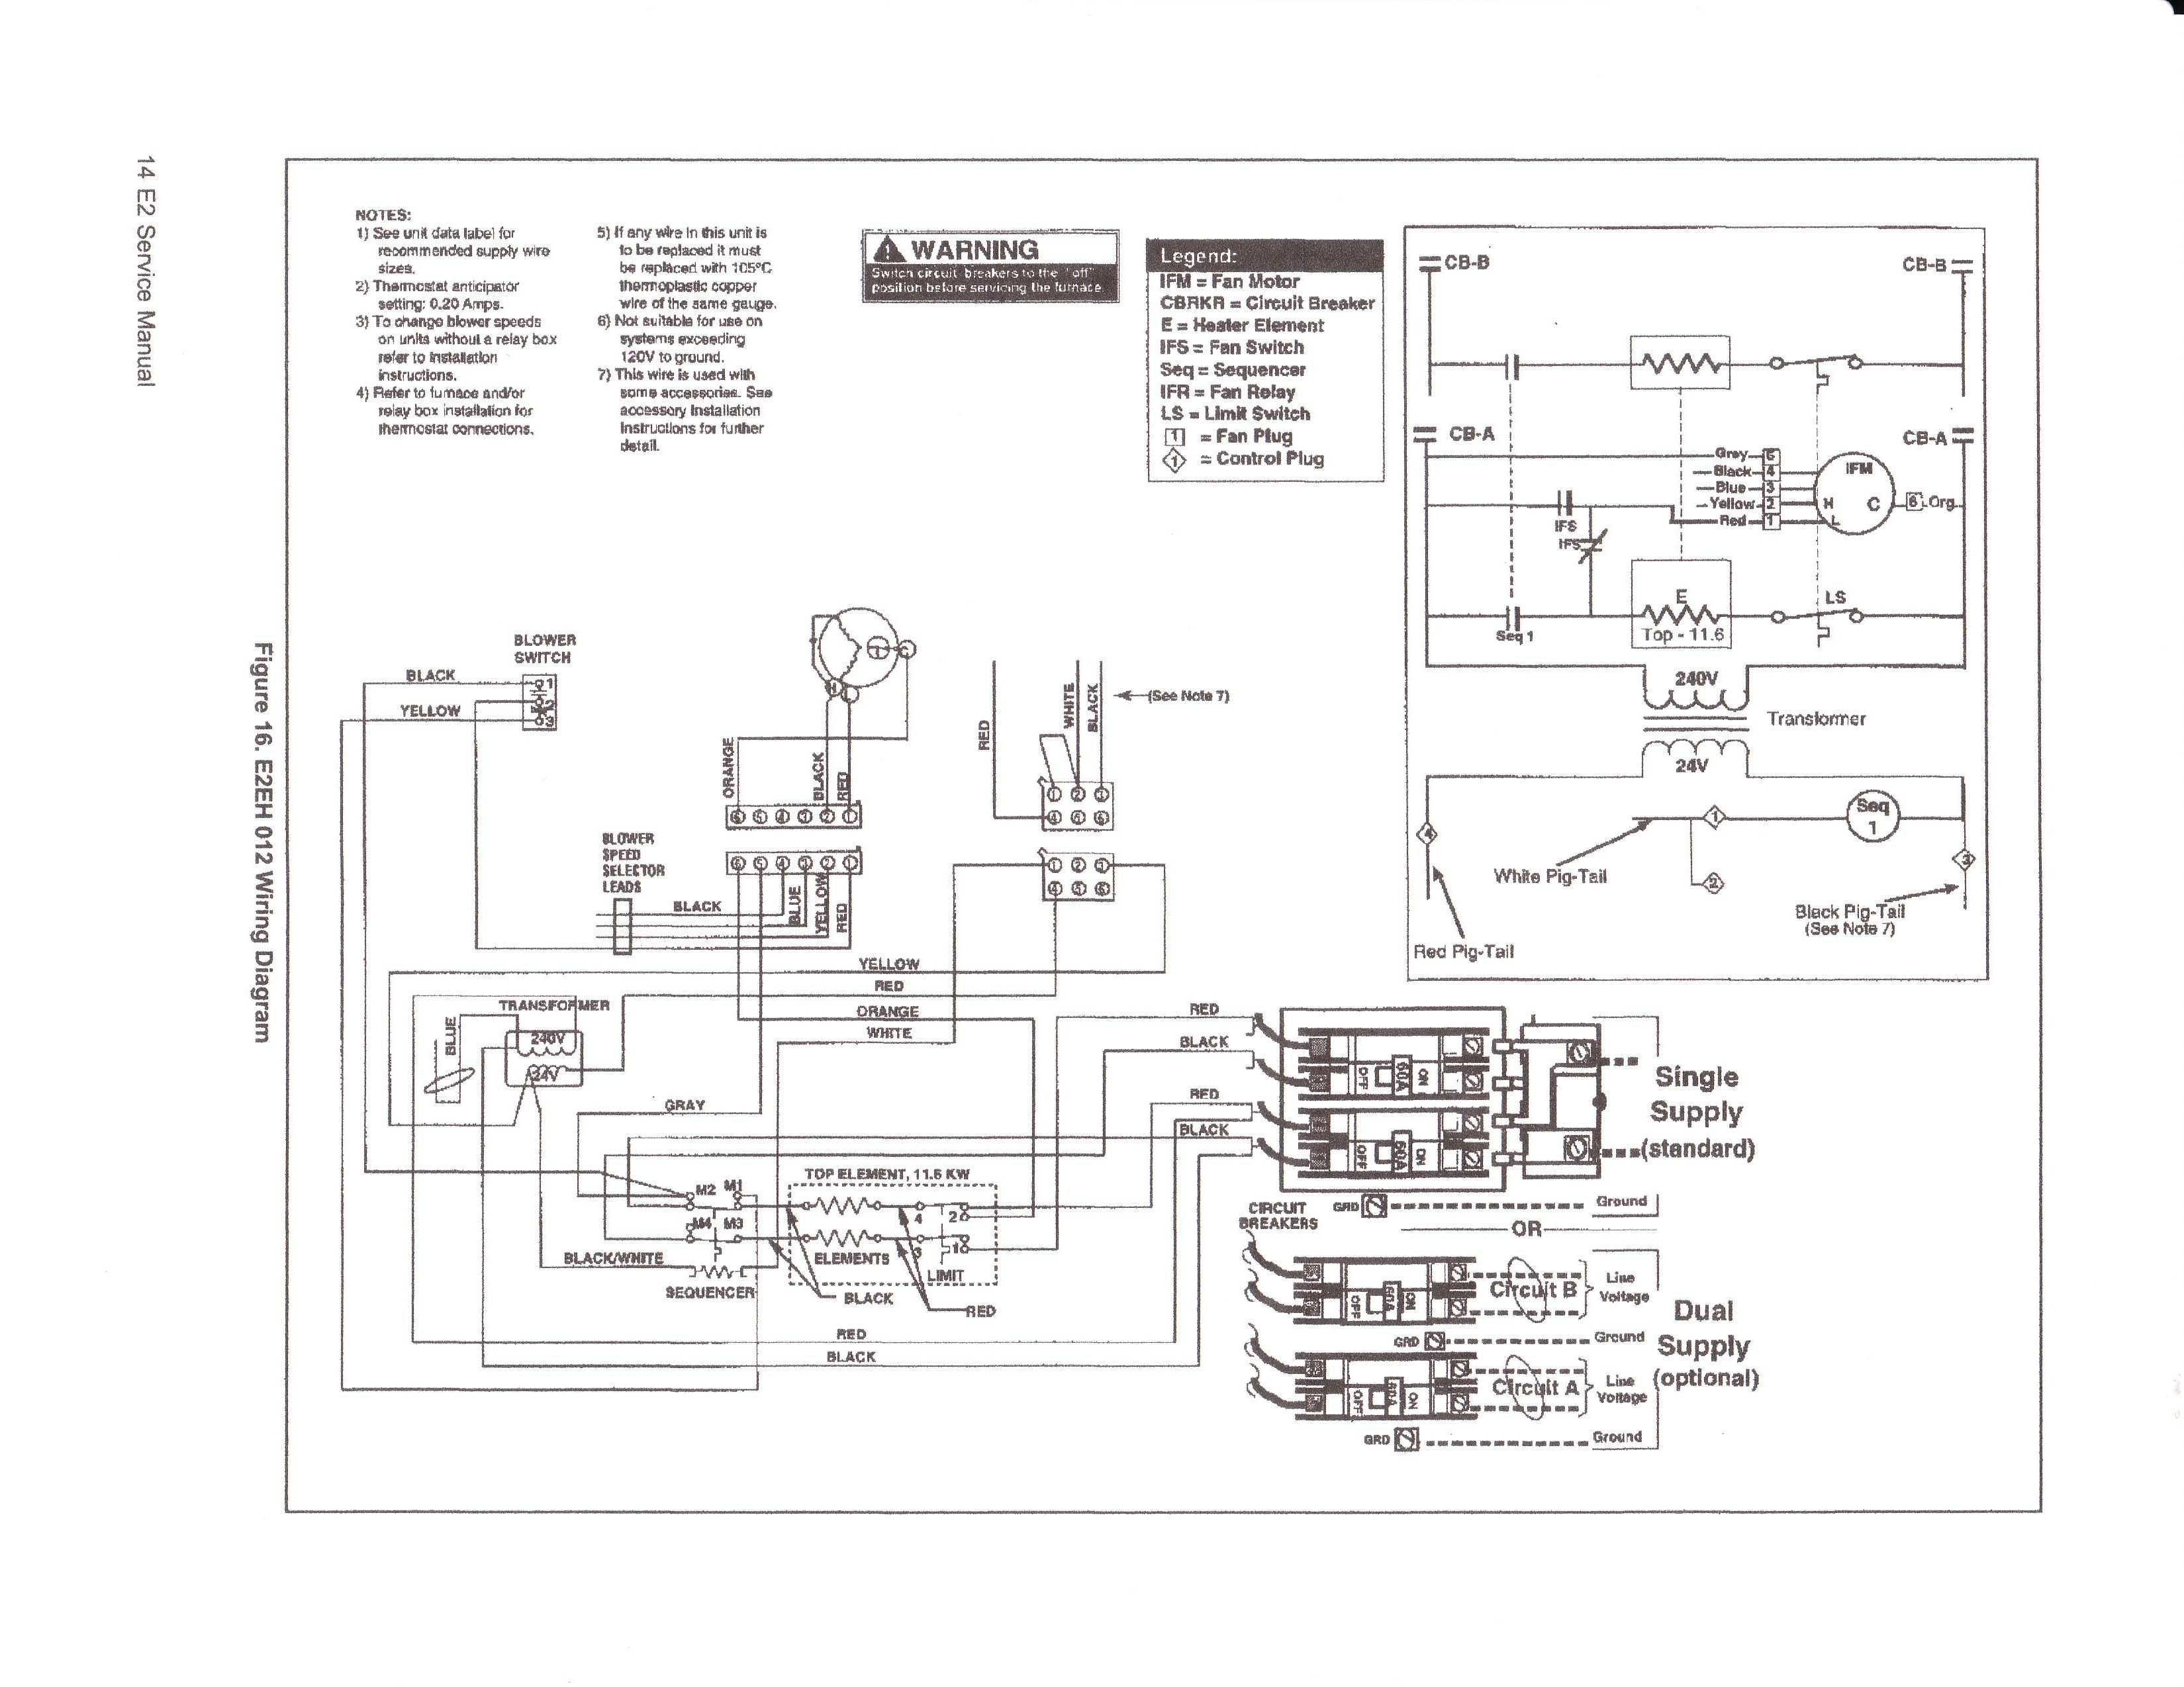 Furnace Fuse Box | Wiring Library - Coleman Electric Furnace Wiring Diagram